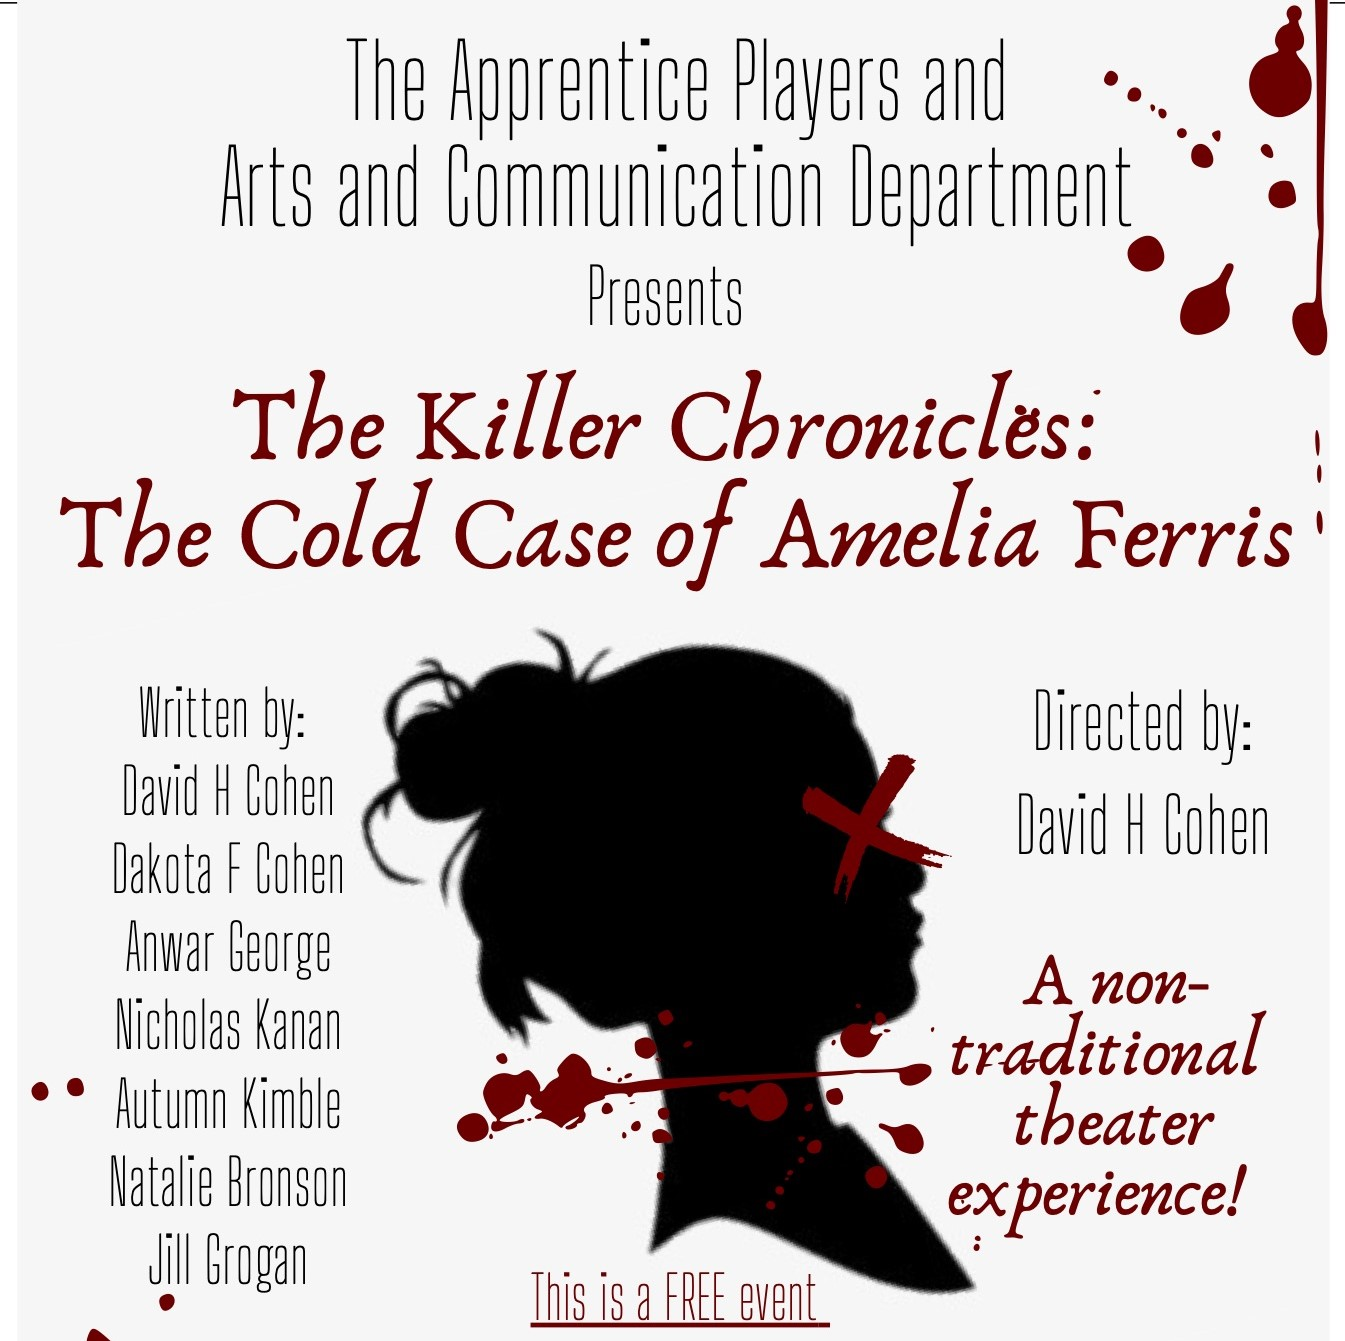 Killer Chronicles: The Cold Case of Amelia Ferris